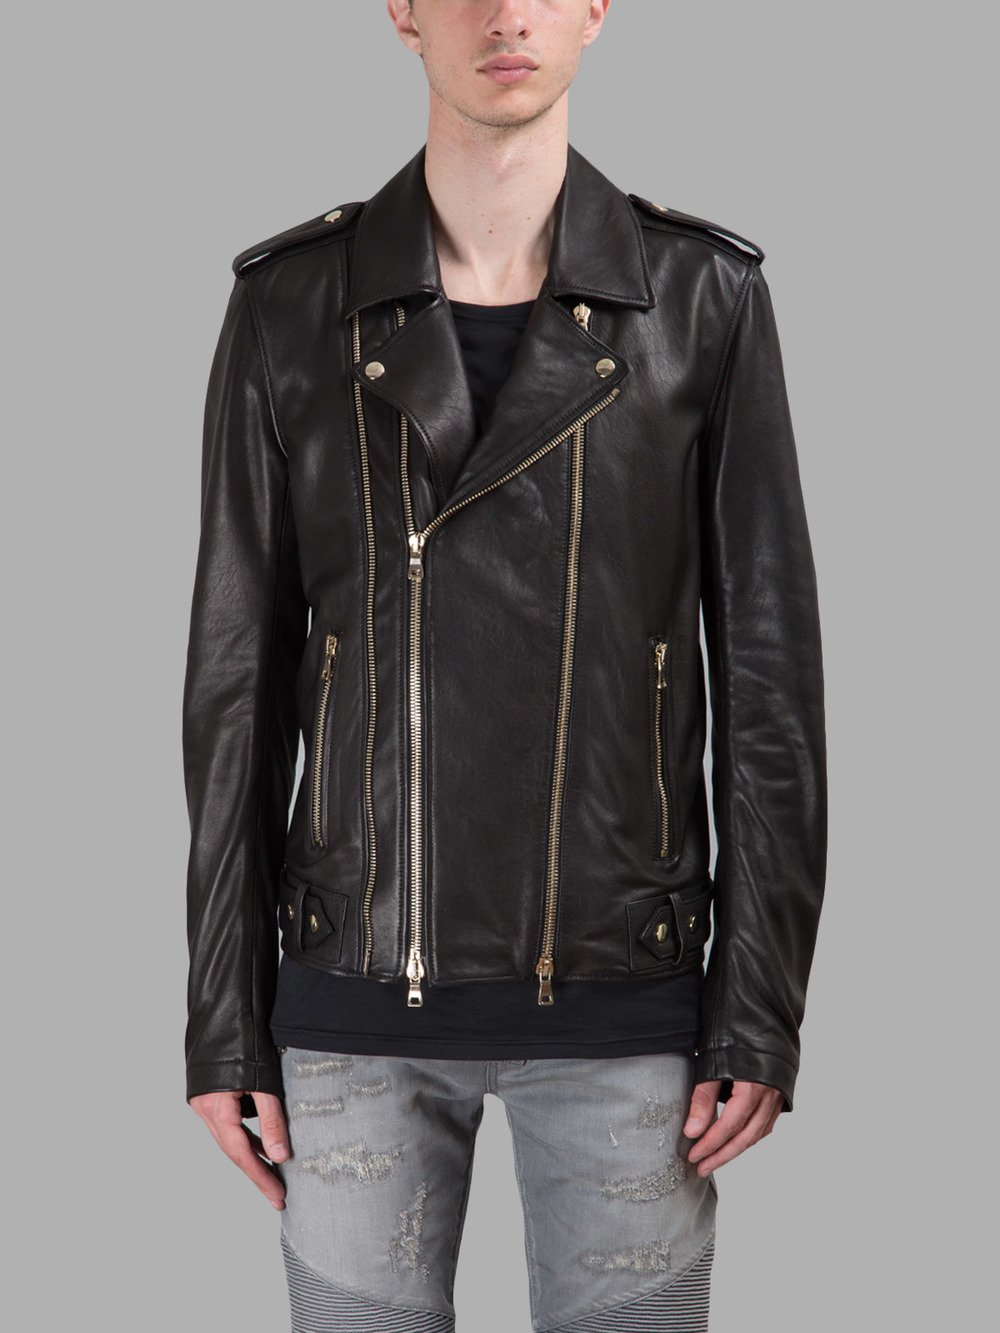 BALMAIN LEATHER JACKETS